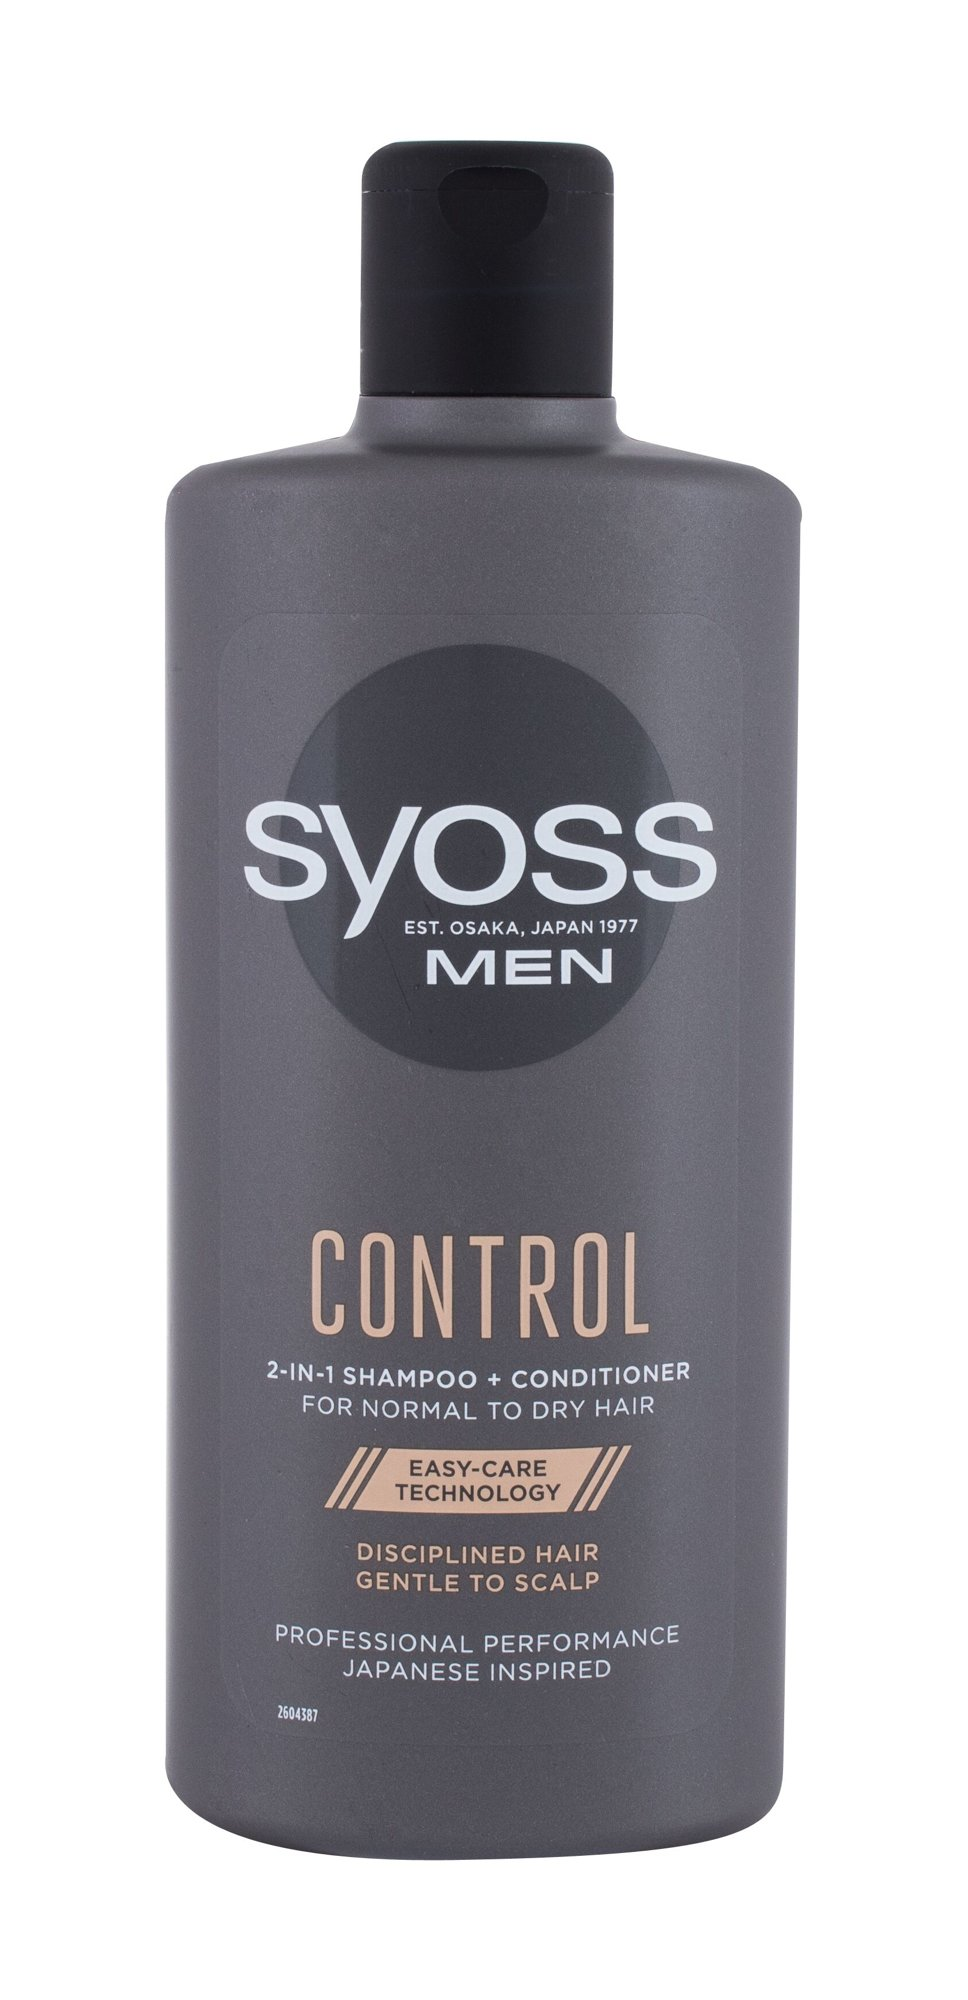 Syoss Professional Performance Men Control 2-in-1, Sampon 440ml